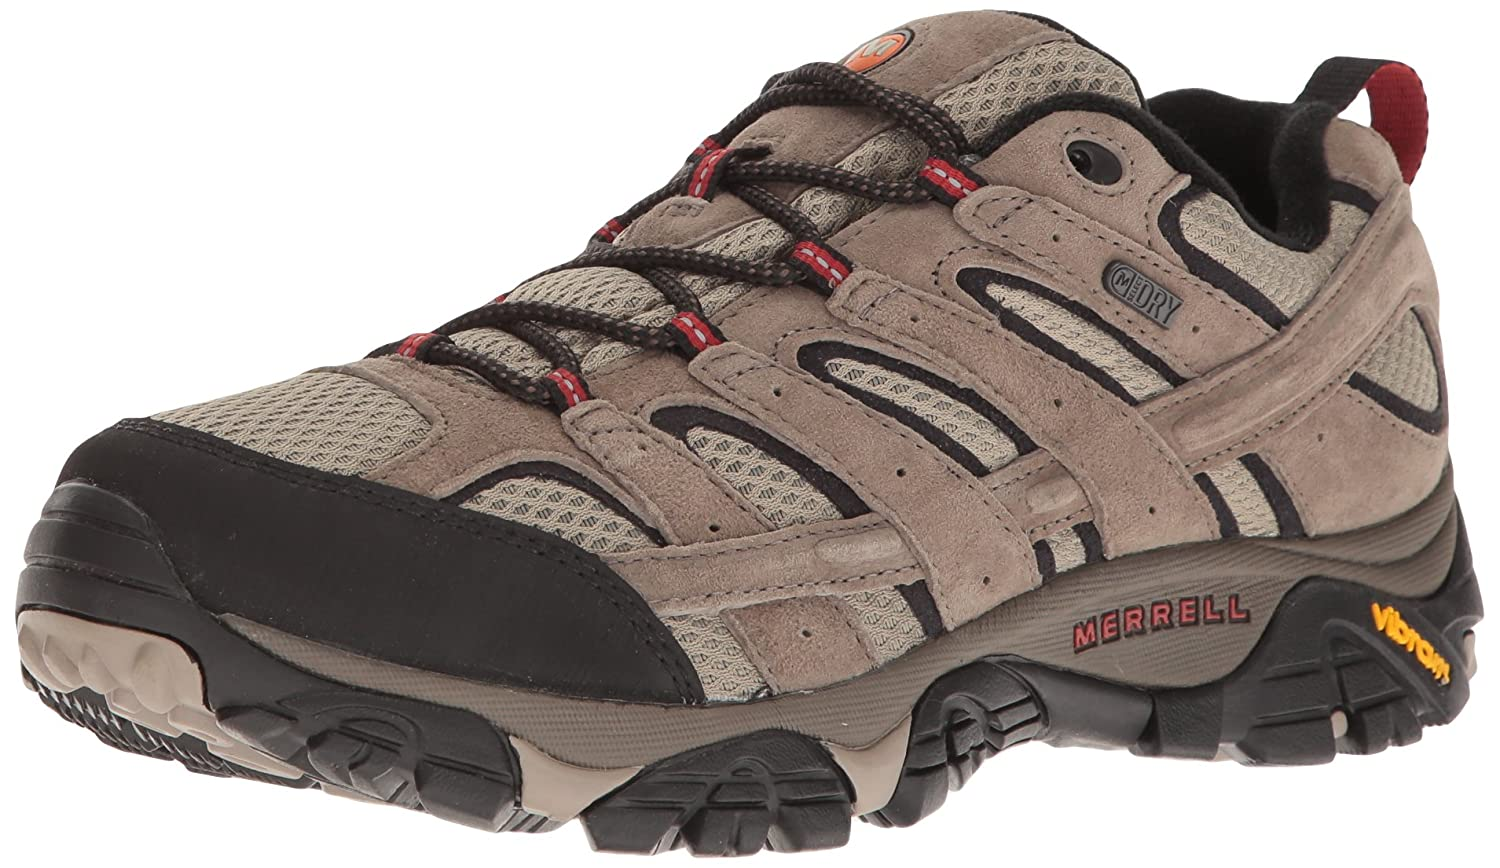 d70137302d Merrell Men's Moab 2 Waterproof Hiking Shoe